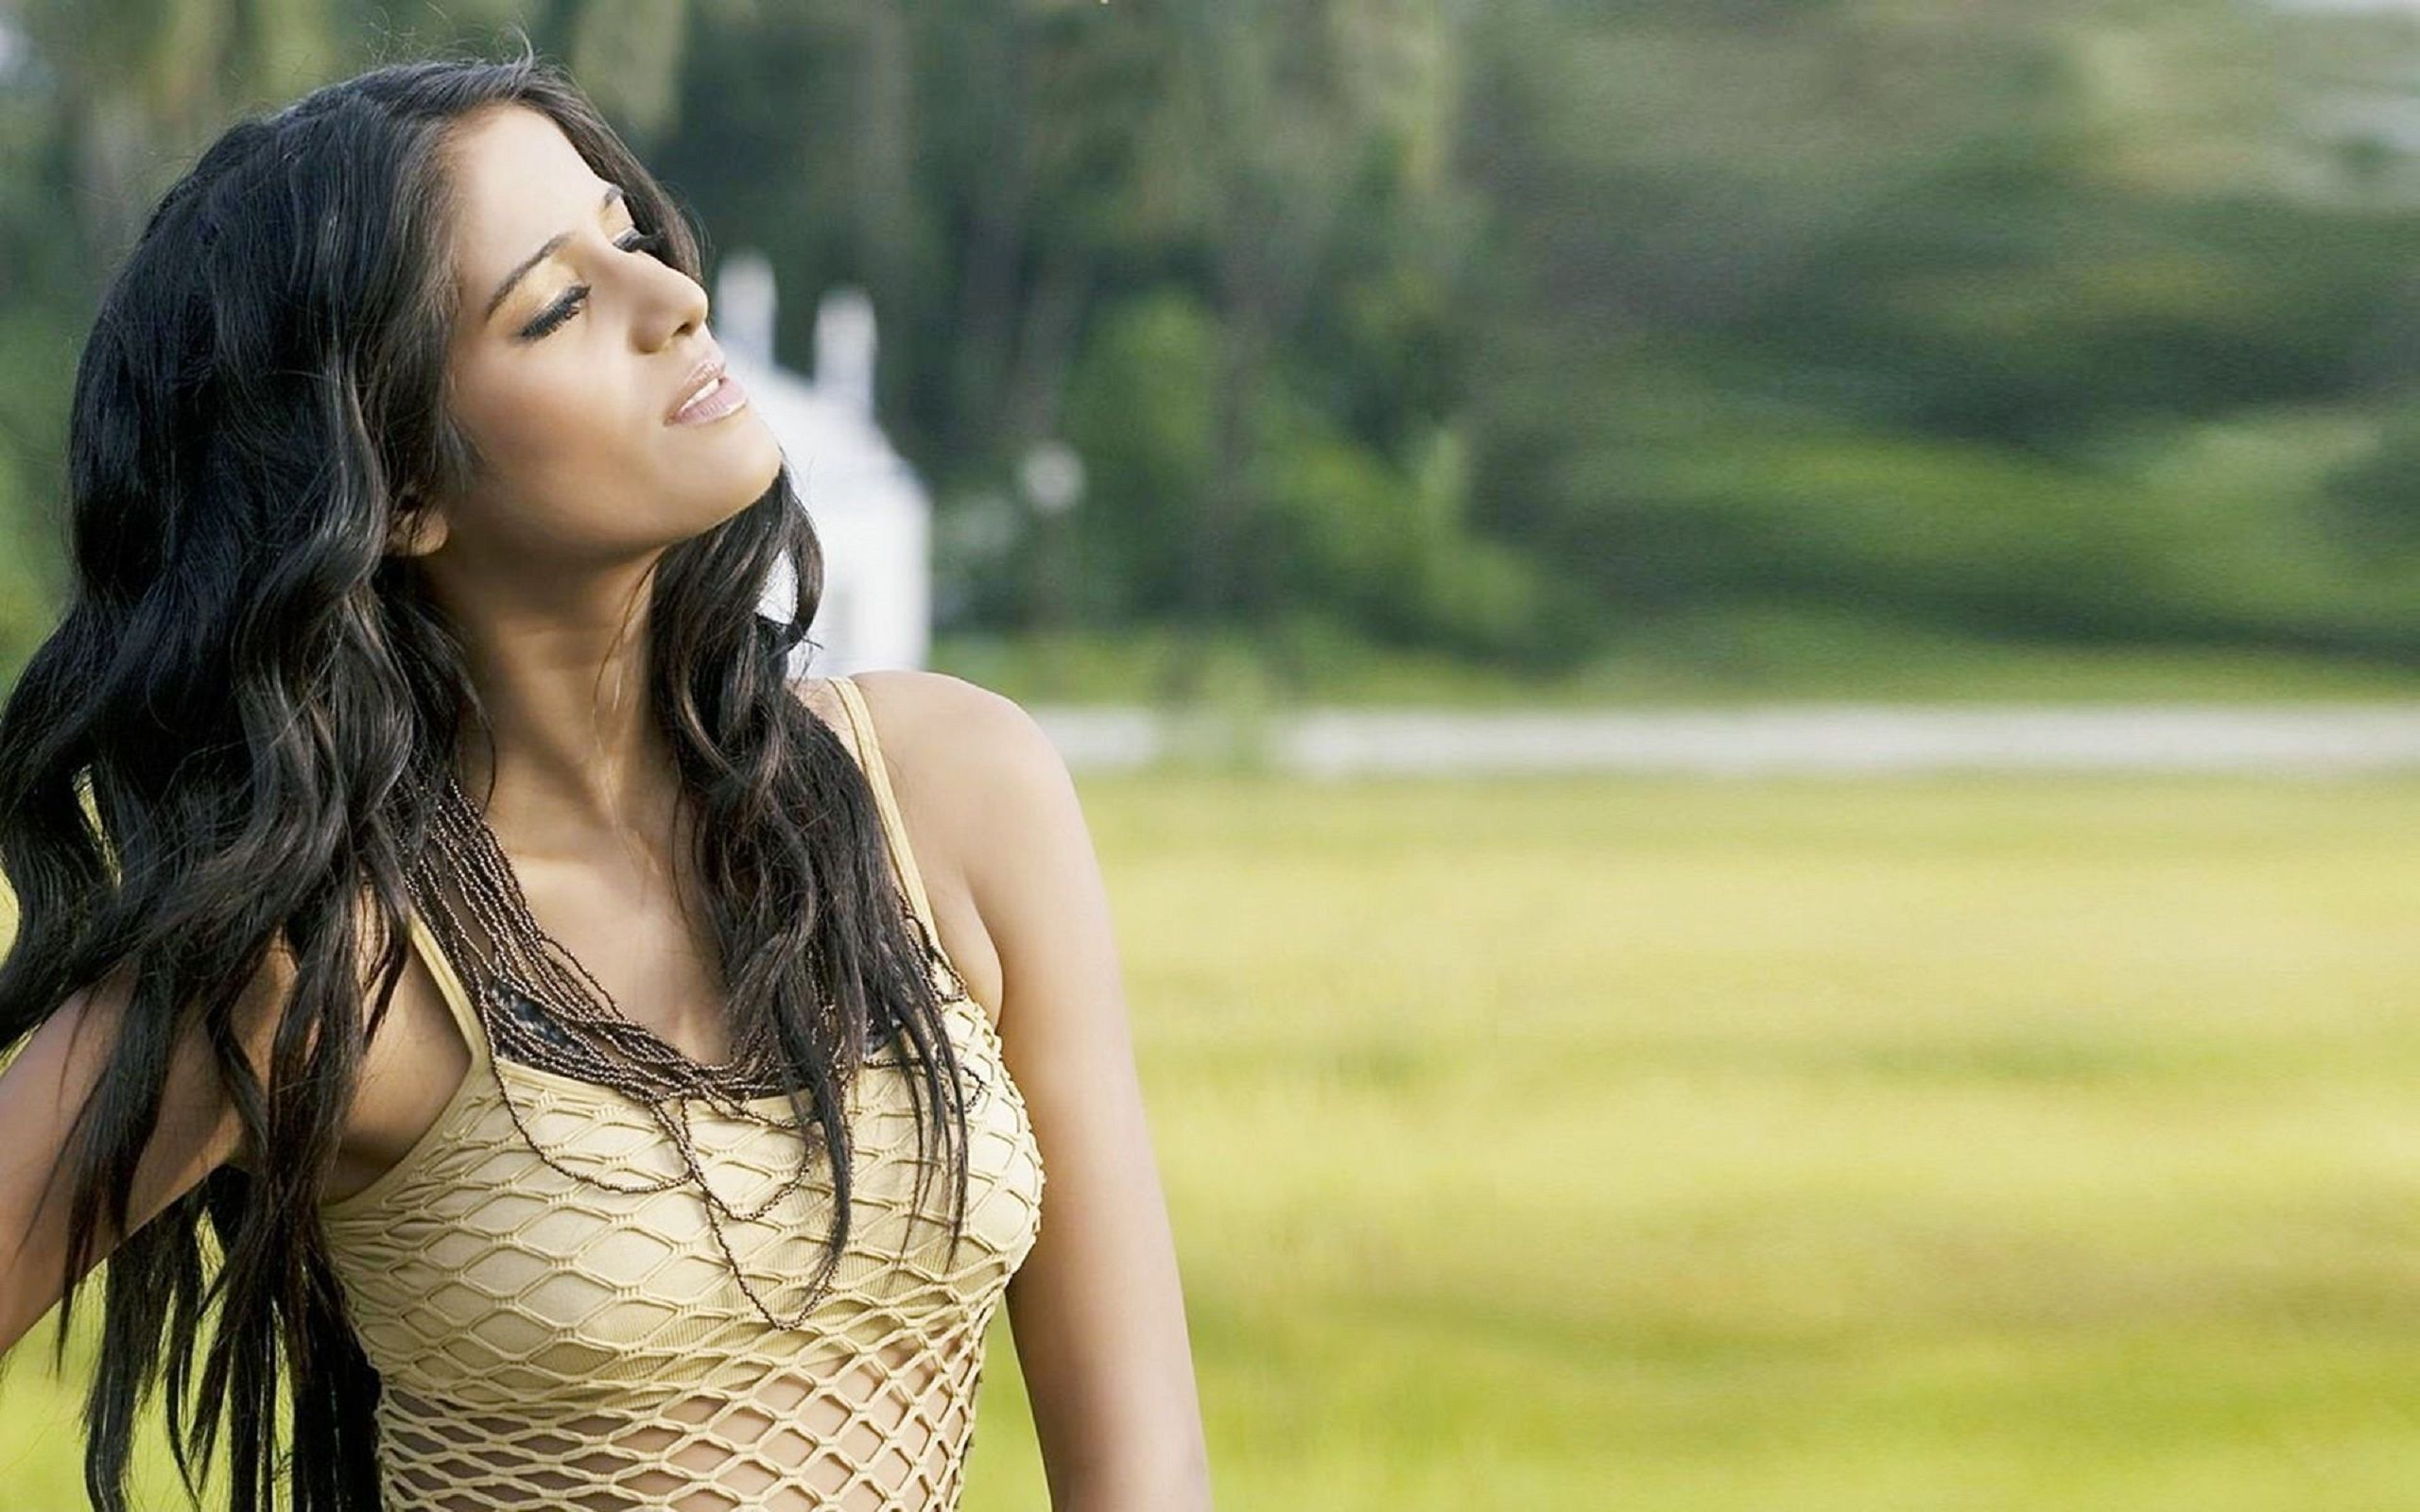 poonam pandey hd wallpaper - http://www.hd1080pwallpaper.in/indian